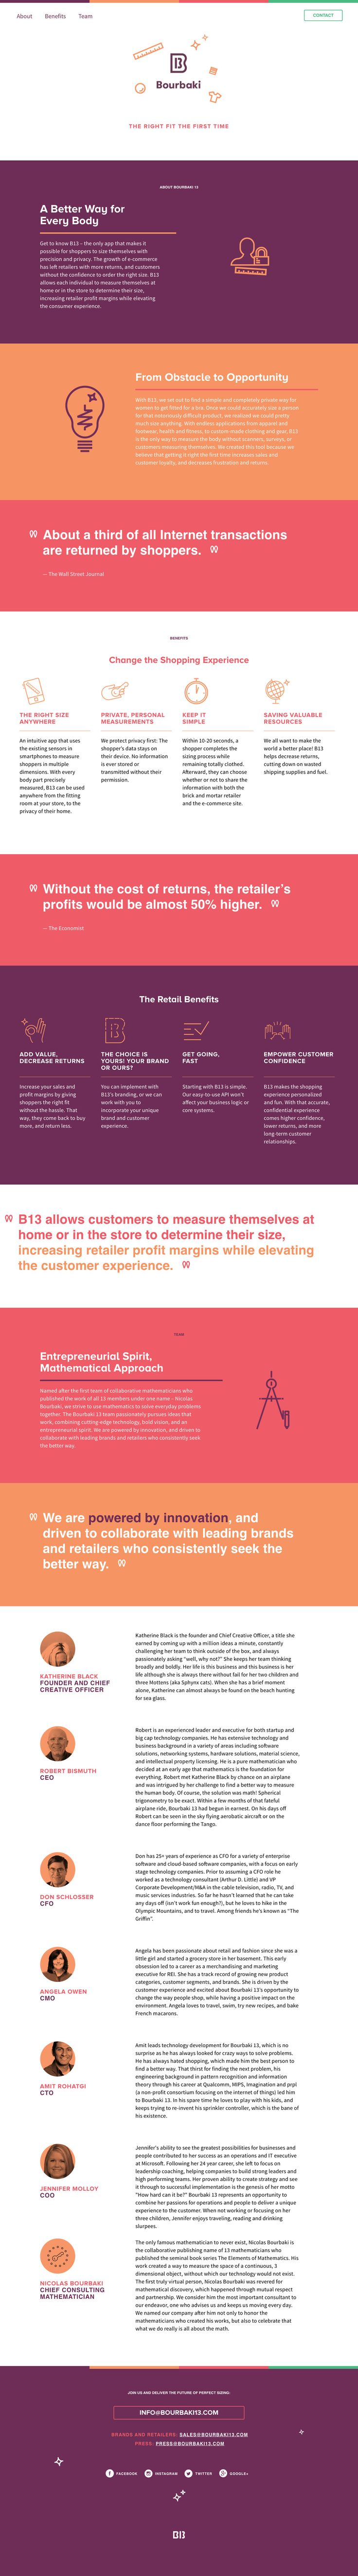 Colorful One Pager for 'Bourbaki 13' - a simple sizing app that aims to accurately (and privately) measure every part of the body for the perfect fit. The responsive Single Page website features good clear typography and icons throughout.